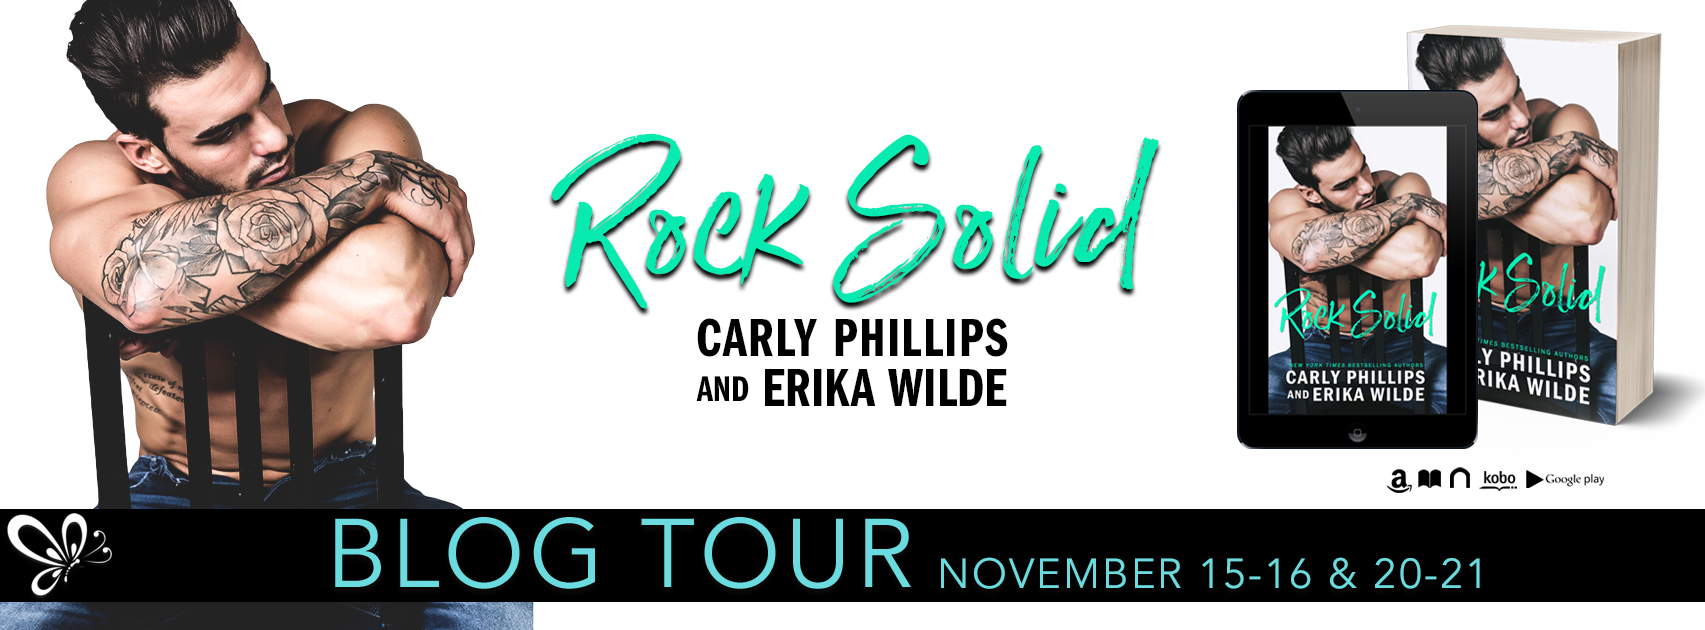 SPOTLIGHT: 'Rock Solid' by Carly Phillips and Erika Wilde